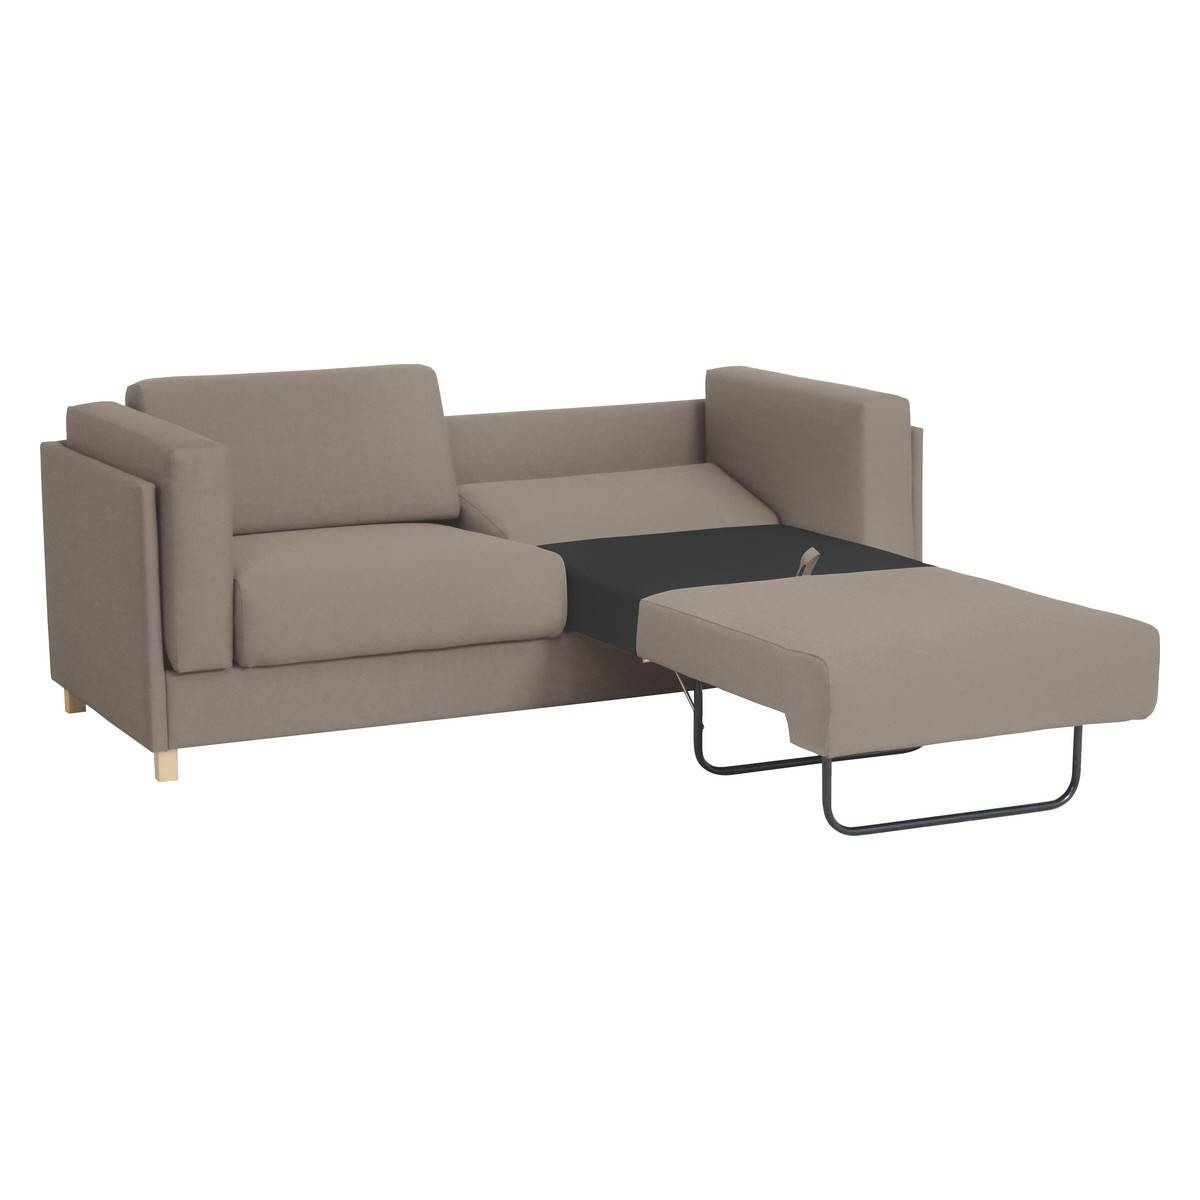 Colombo Natural Fabric 3 Seater Sofa Bed | Buy Now At Habitat Uk in 3 Seater Sofas for Sale (Image 6 of 30)